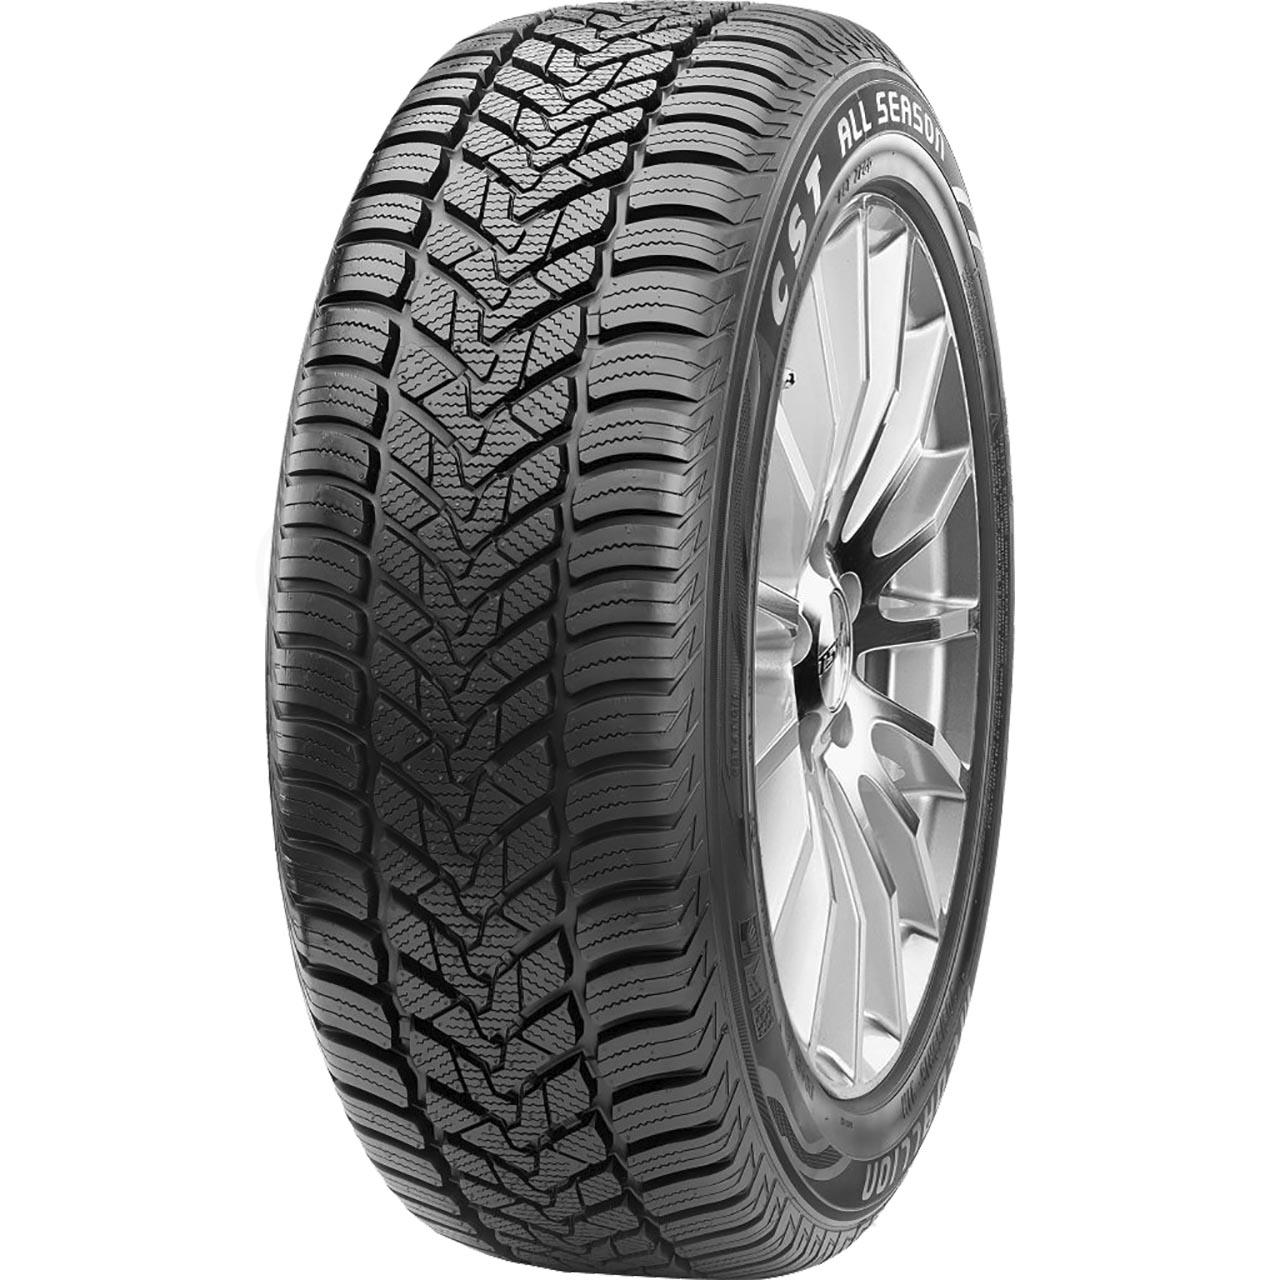 CST Medallion ALL Season ACP1 225/40R18 92V XL